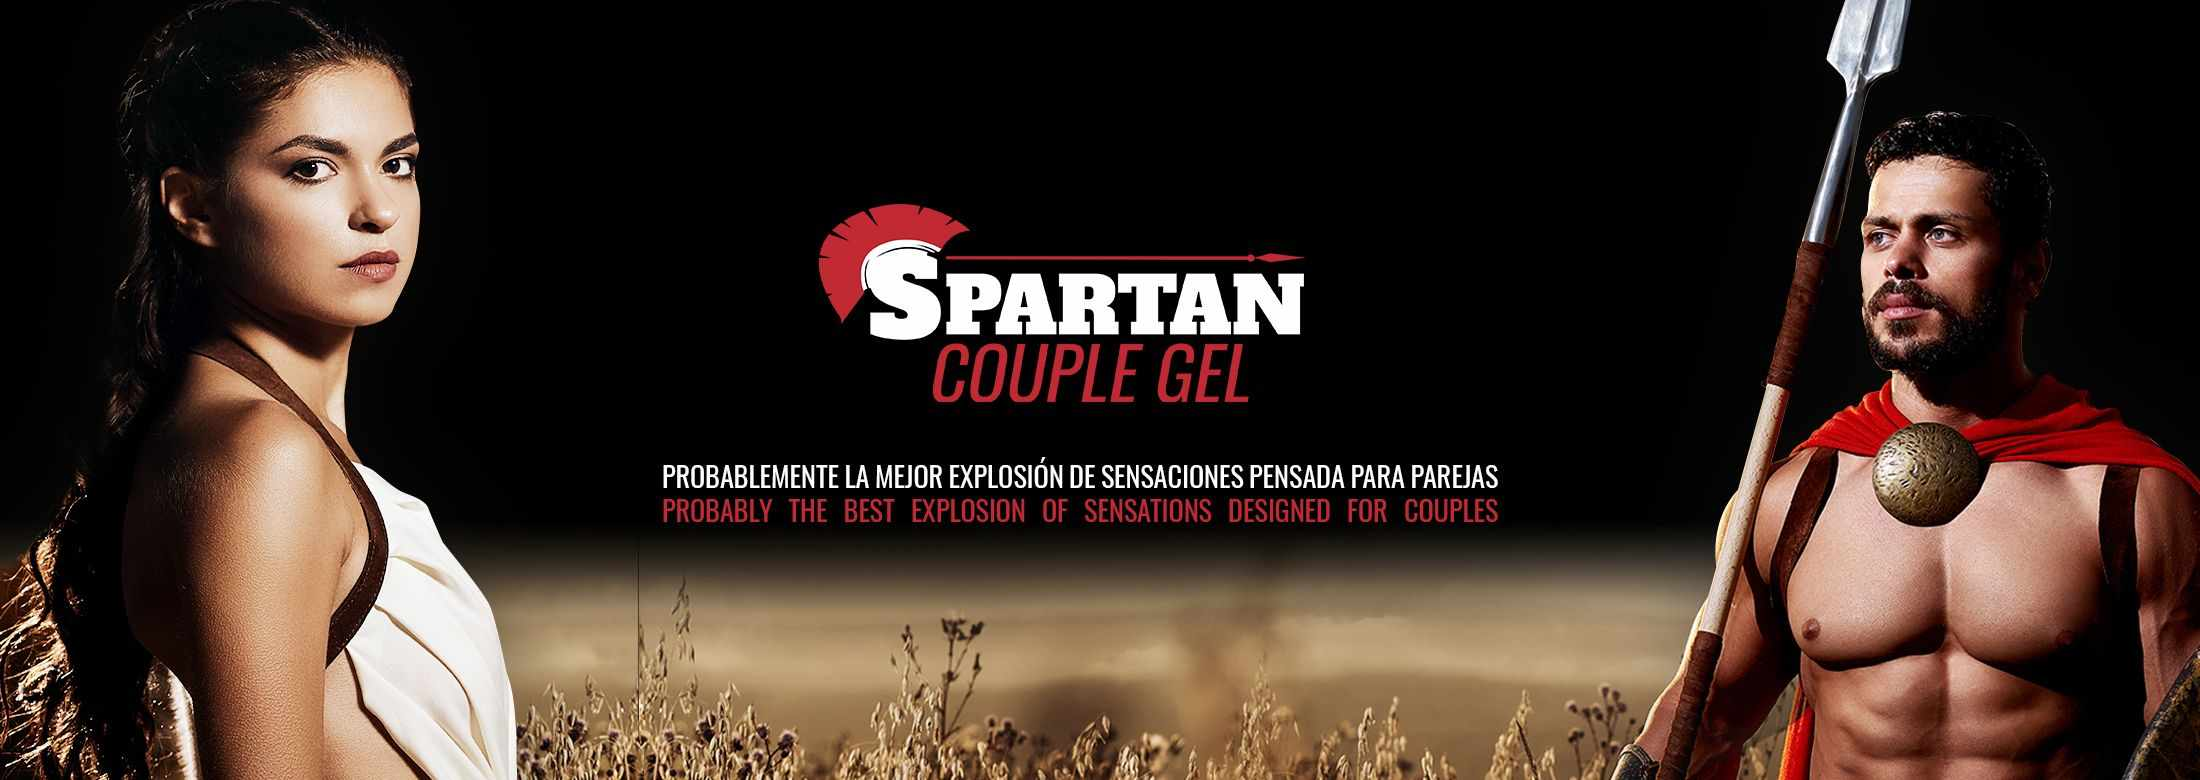 LIST OF PRODUCTS BY MANUFACTURER SPARTAN COUPLE GEL